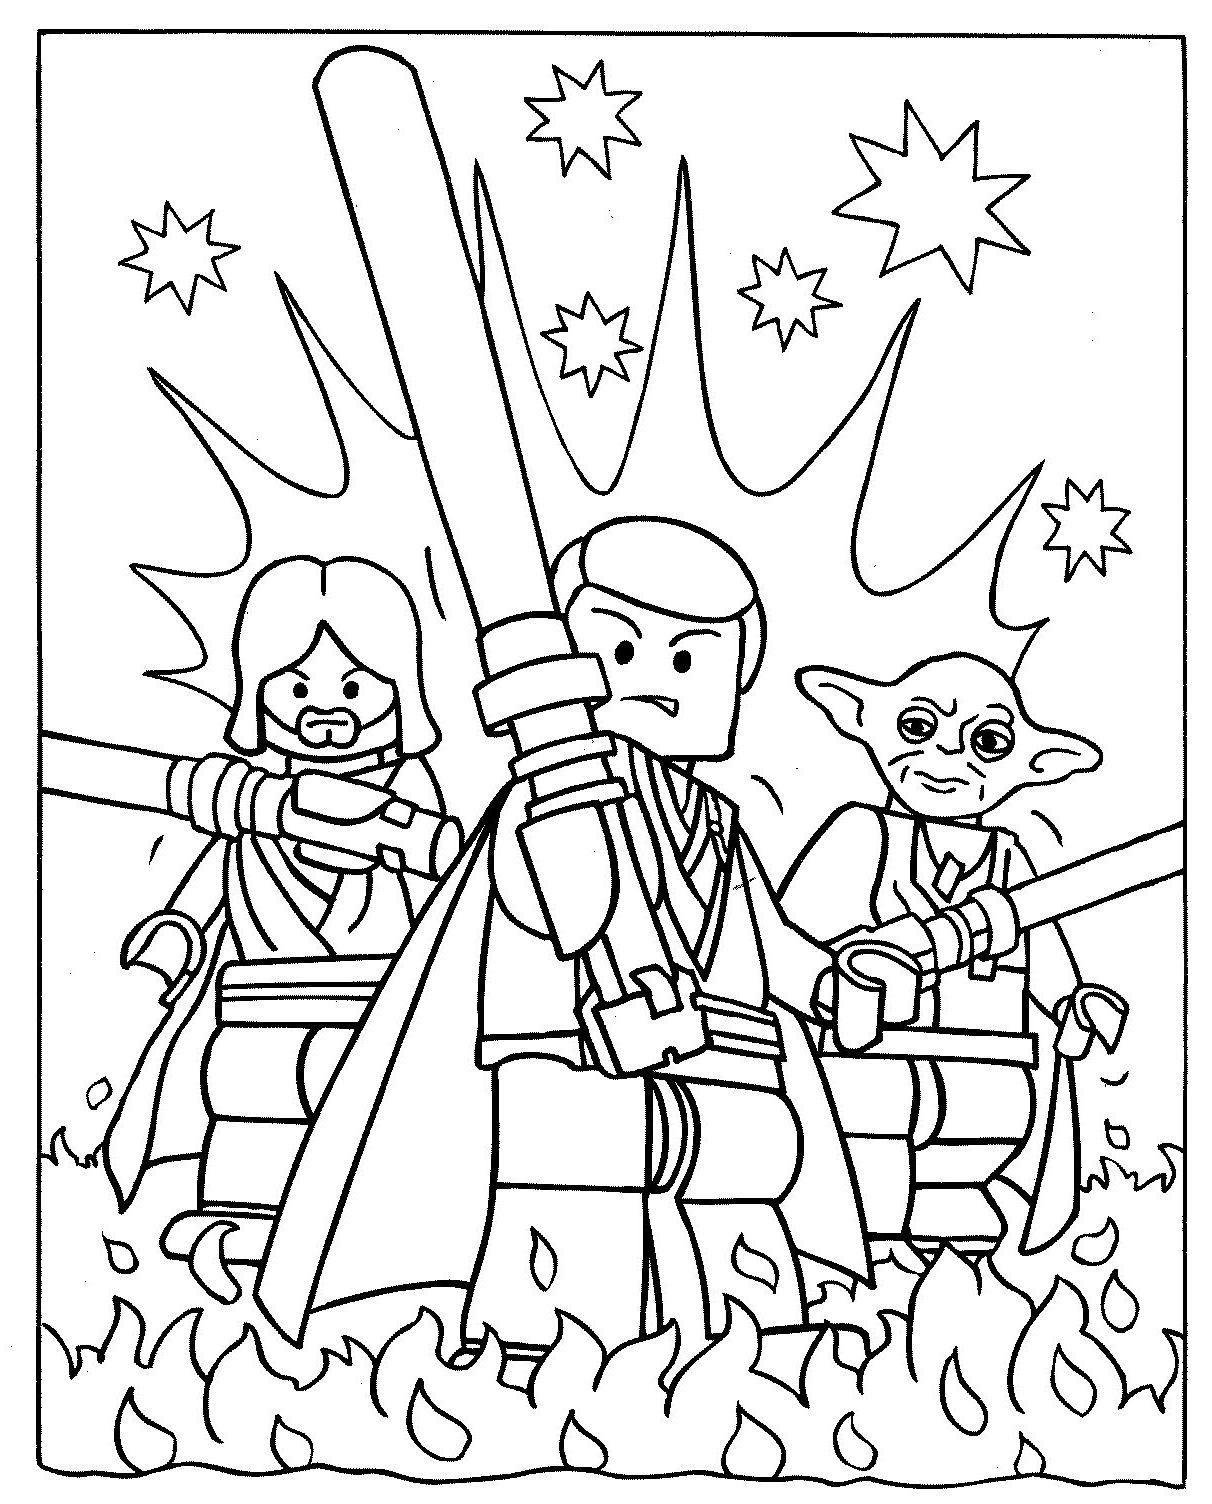 Obi Wan And Luke Skywalker With Yoda Coloring Pages Star Wars